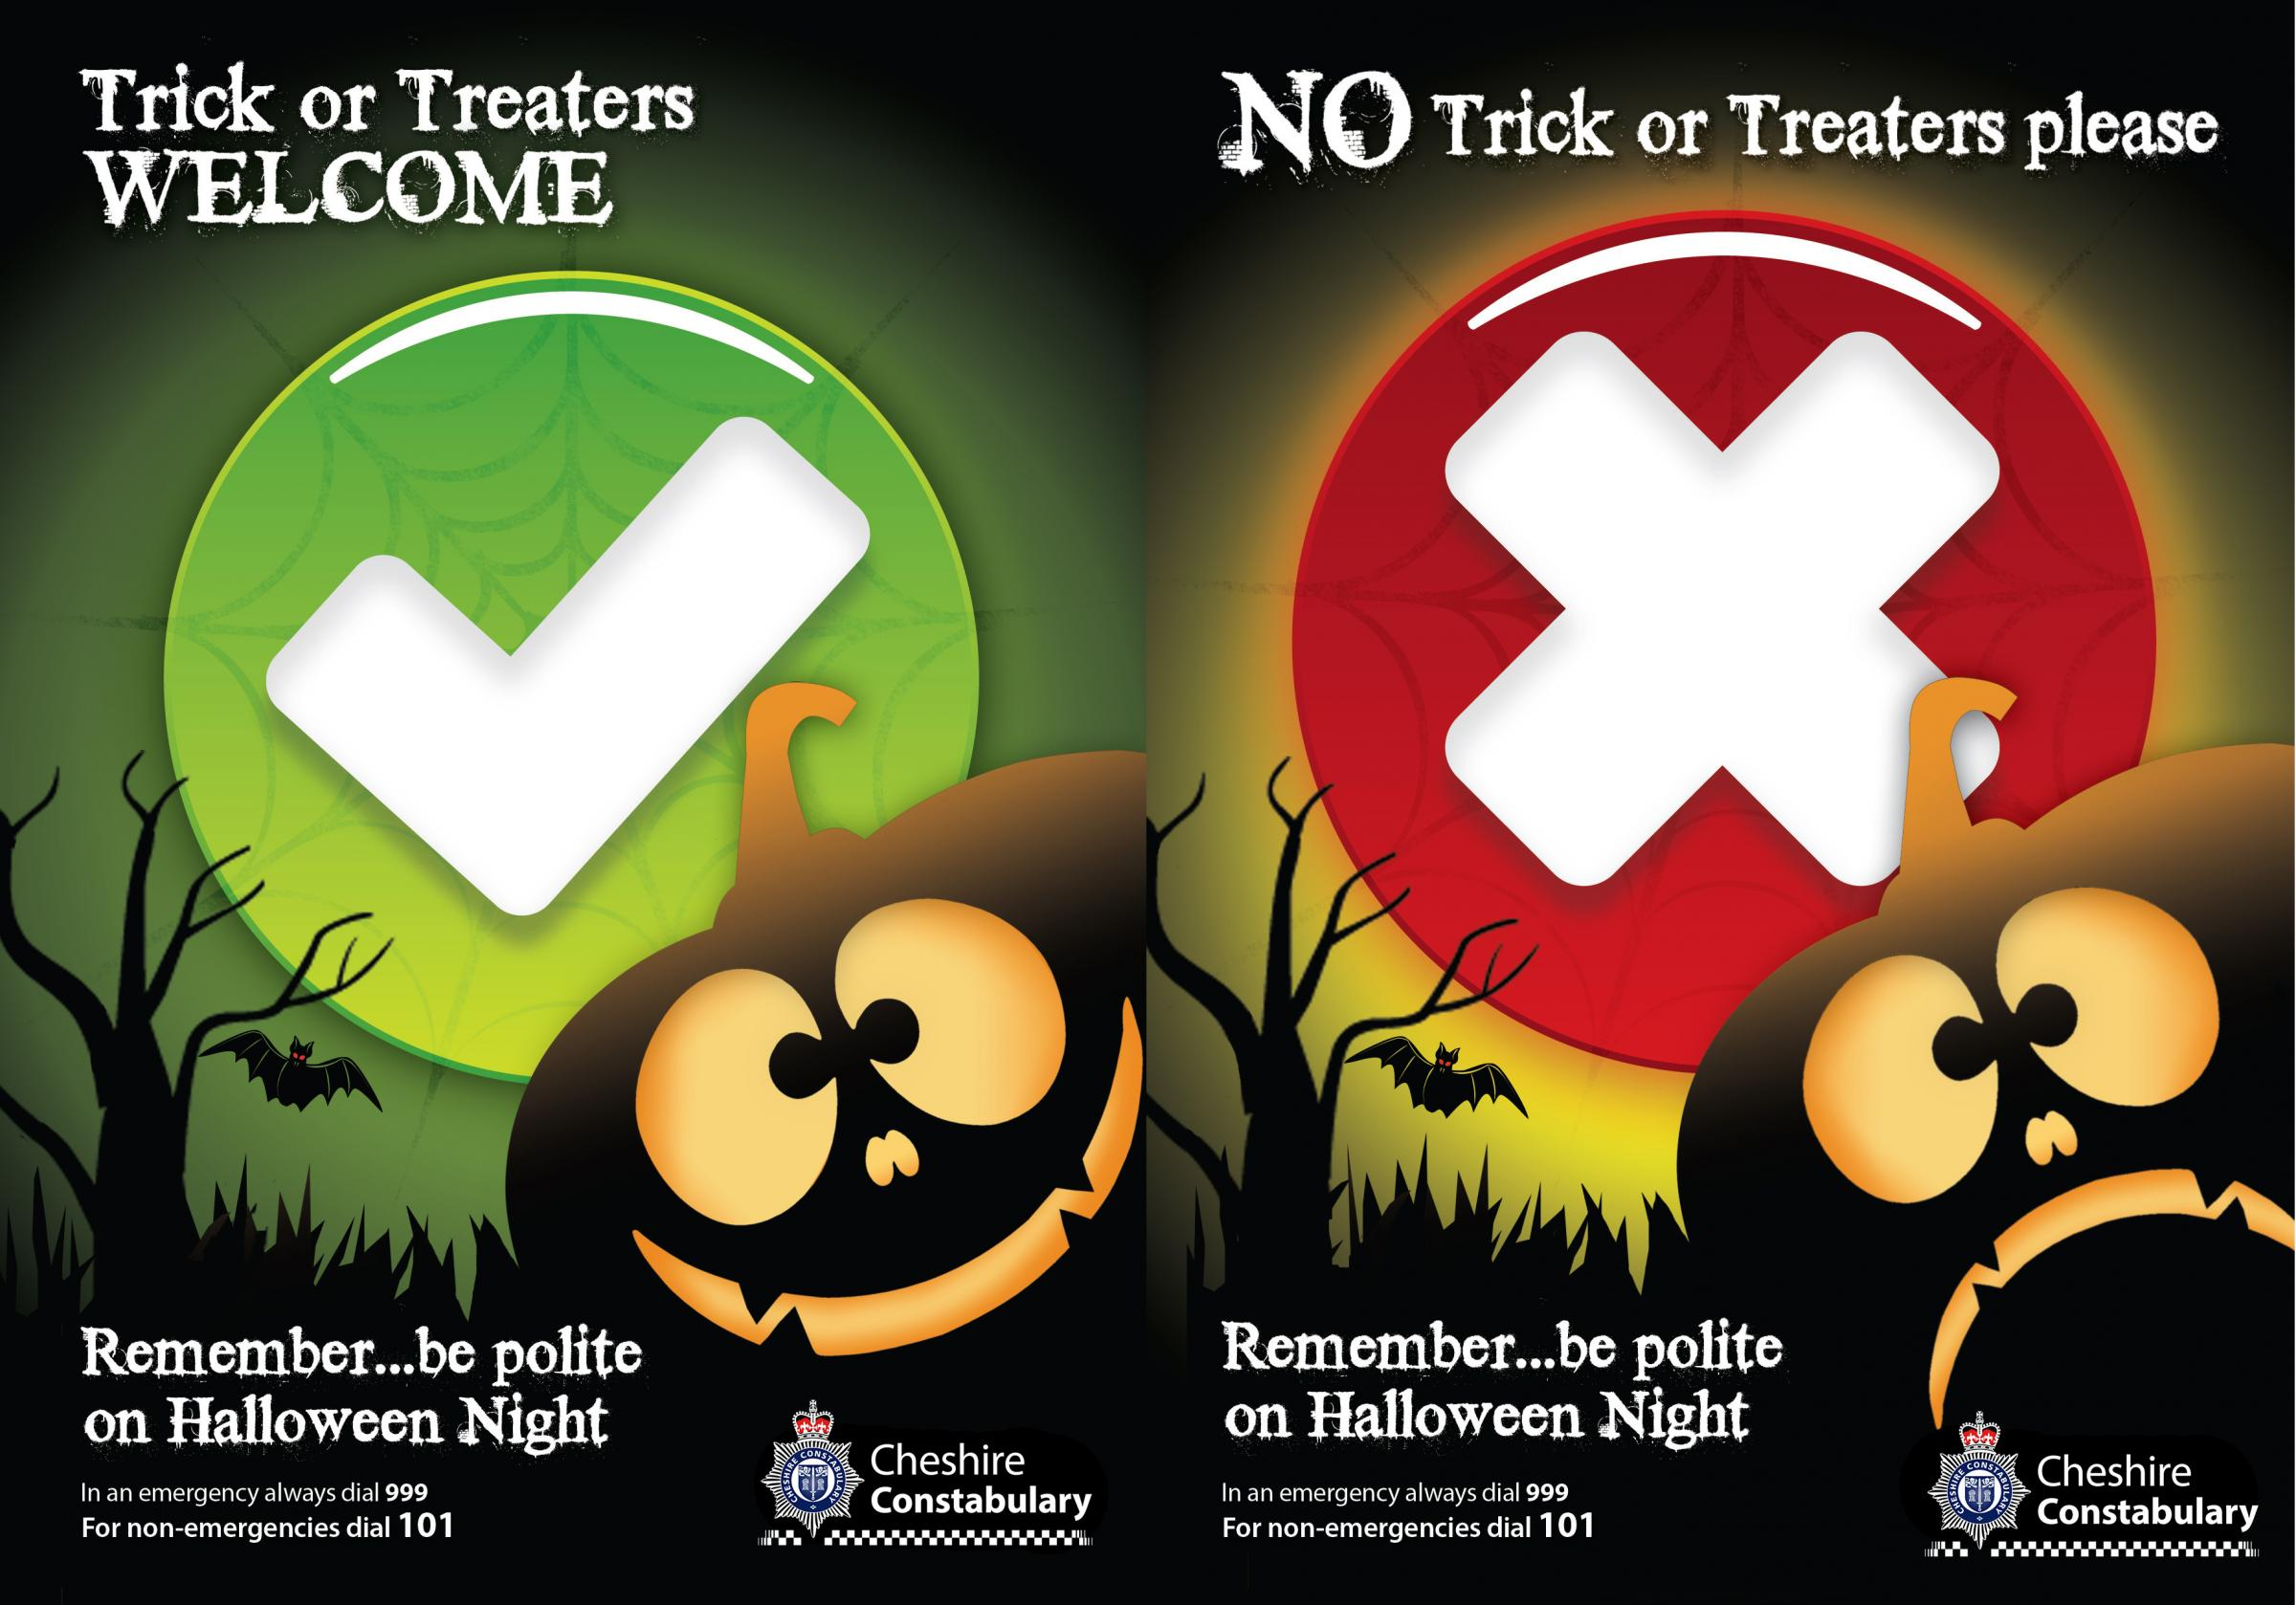 Residents can download a poster to put in their windows to let trick or treaters know if they are welcome to knock or if they prefer to be left in peace